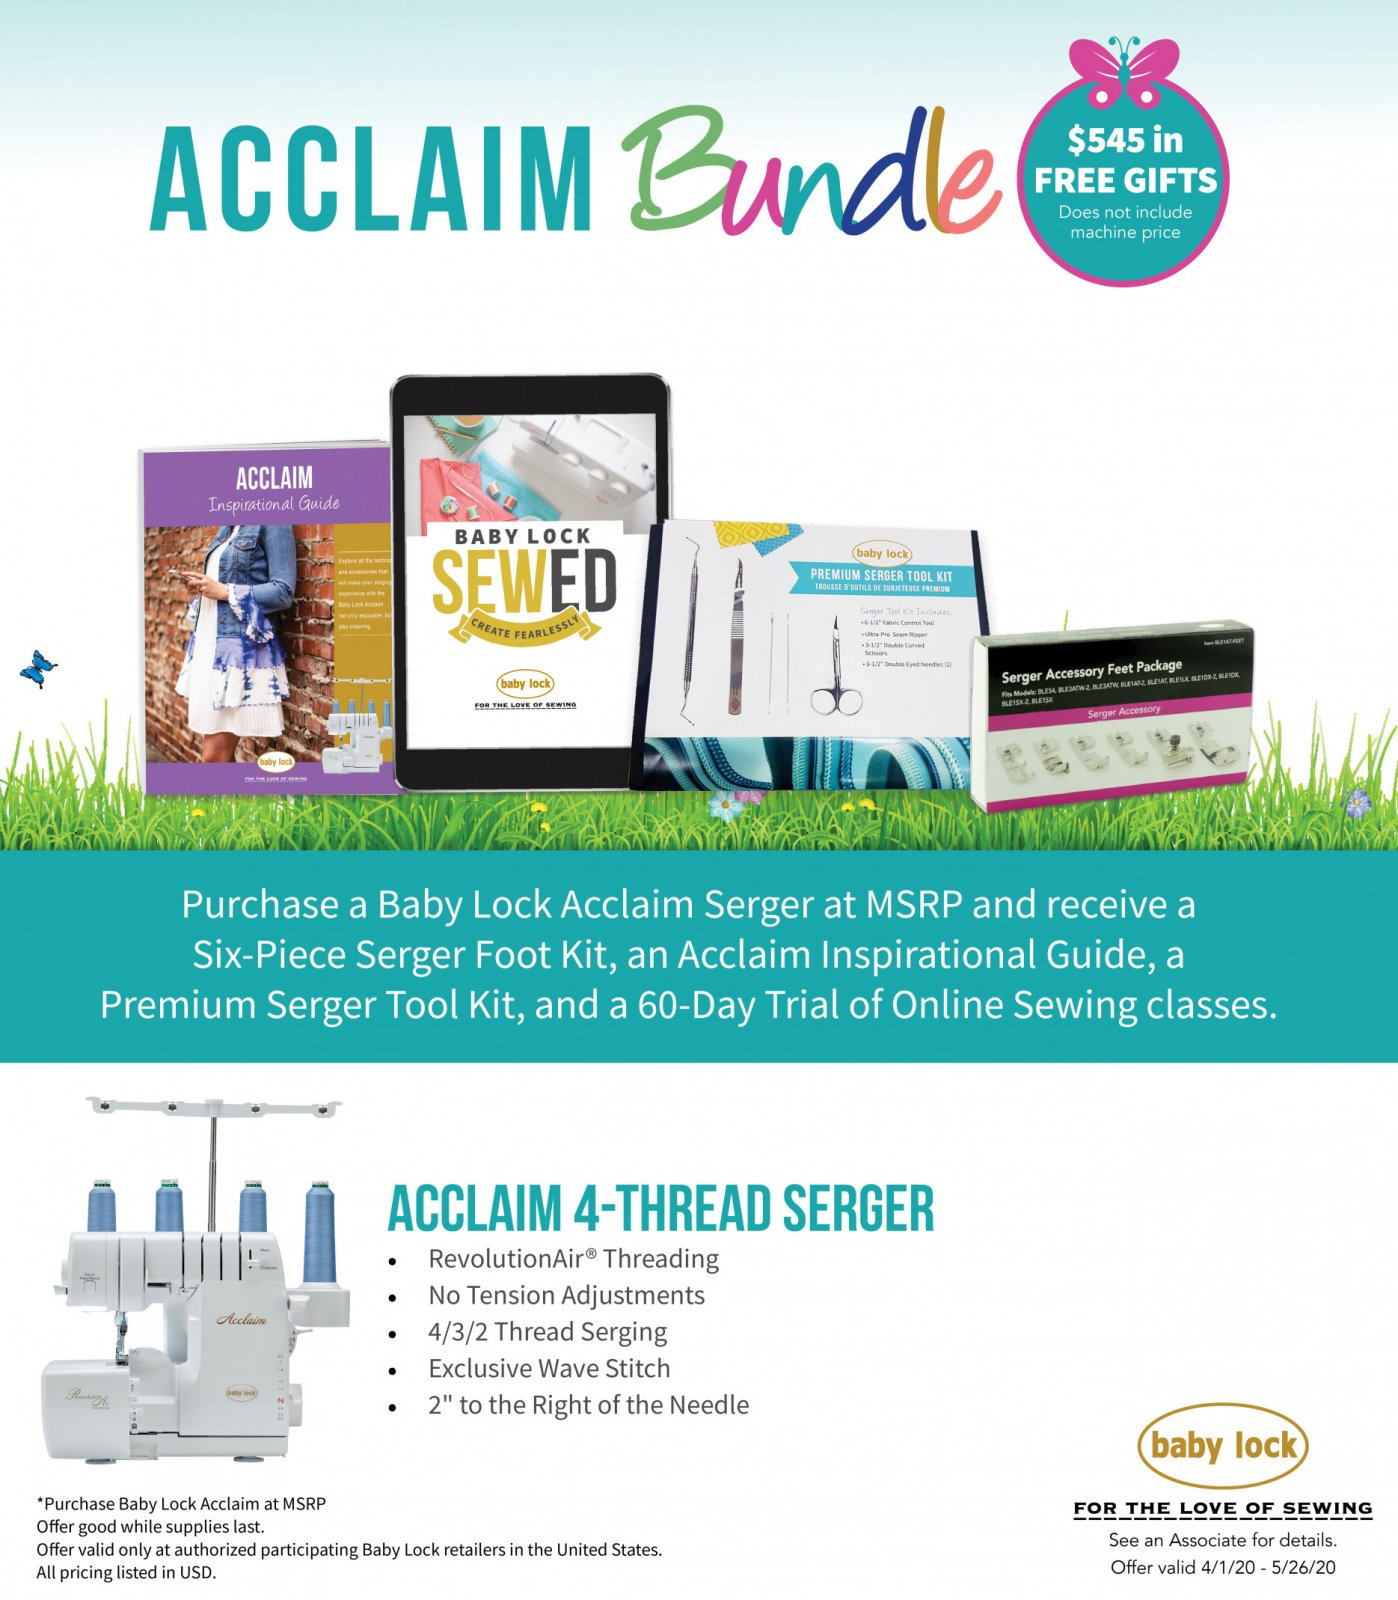 Acclaim Bundle